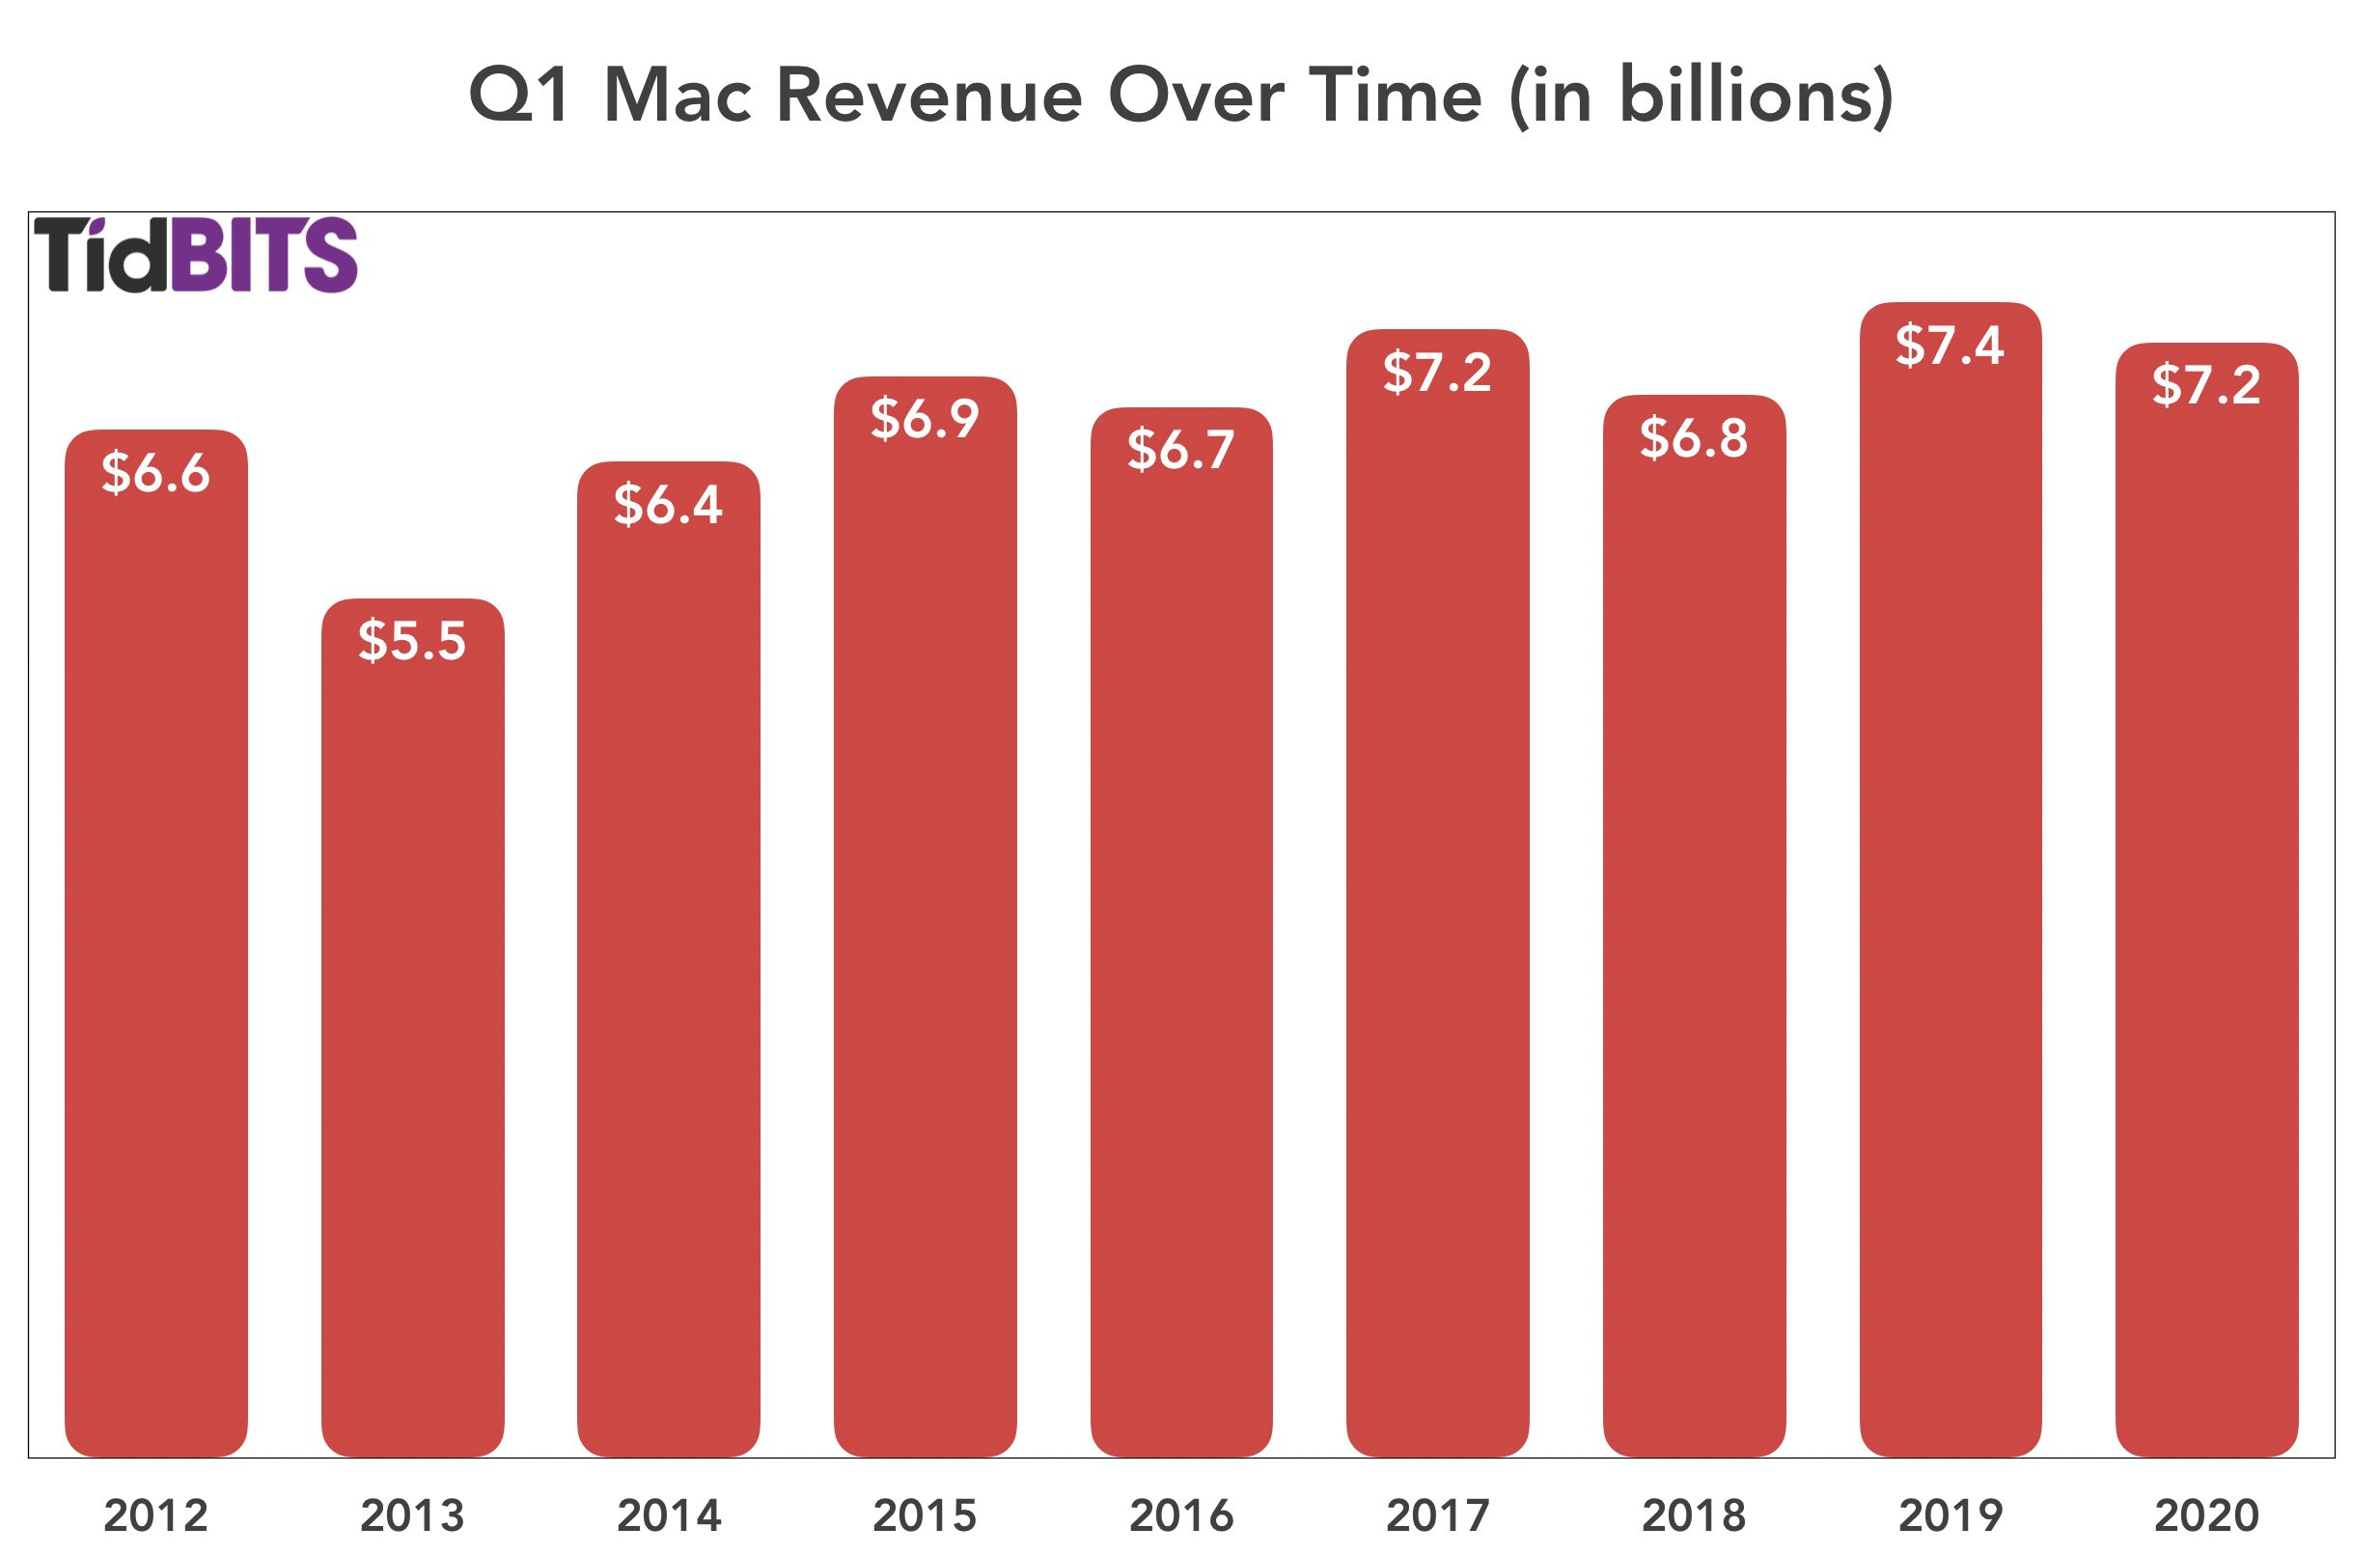 Q1 Mac revenue over time